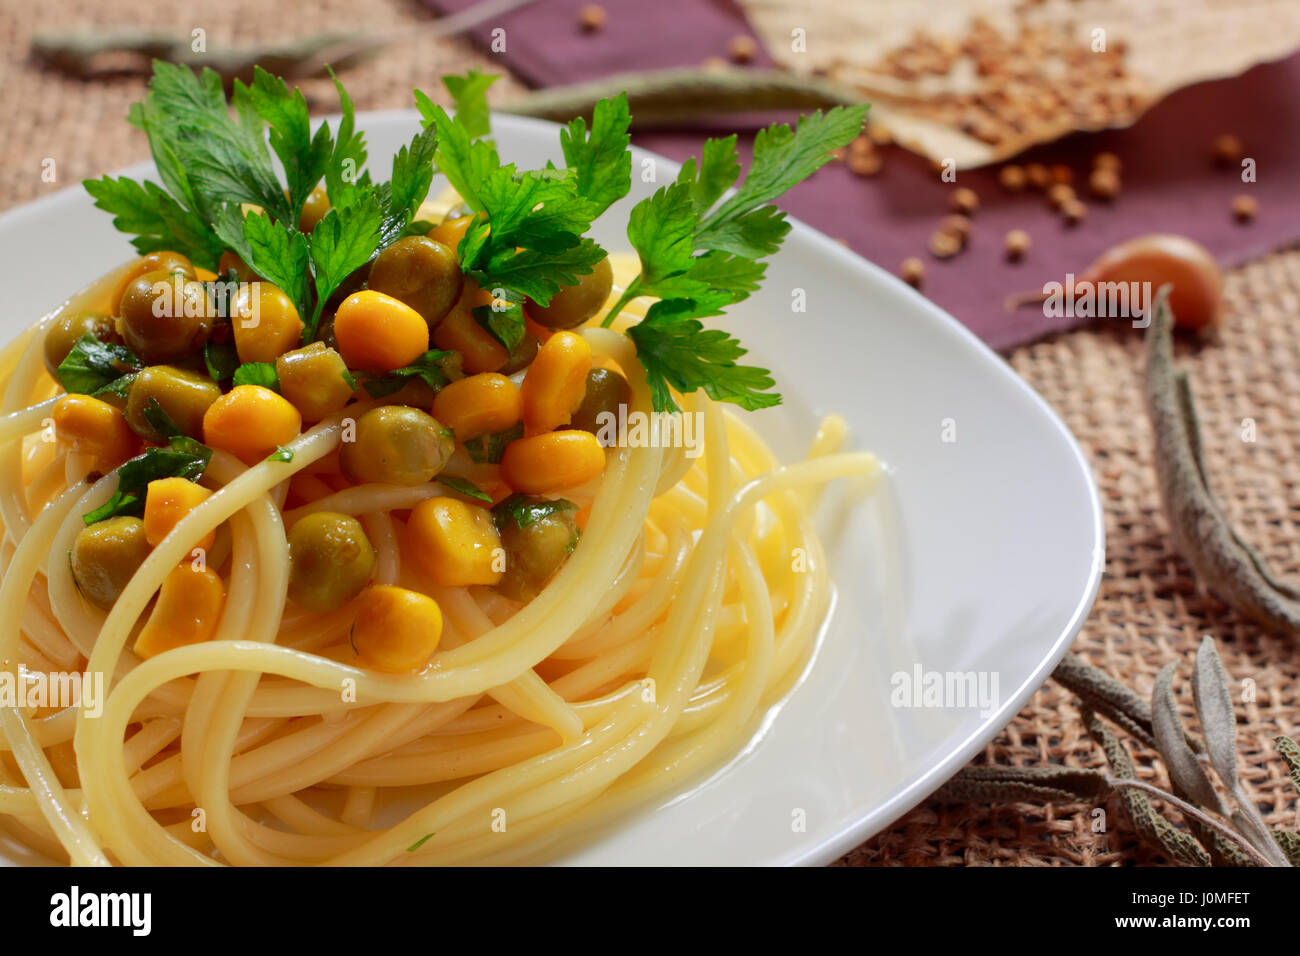 Spaghetti with green peas (preserved), sweetcorn and parsley leaves on plate - Stock Image